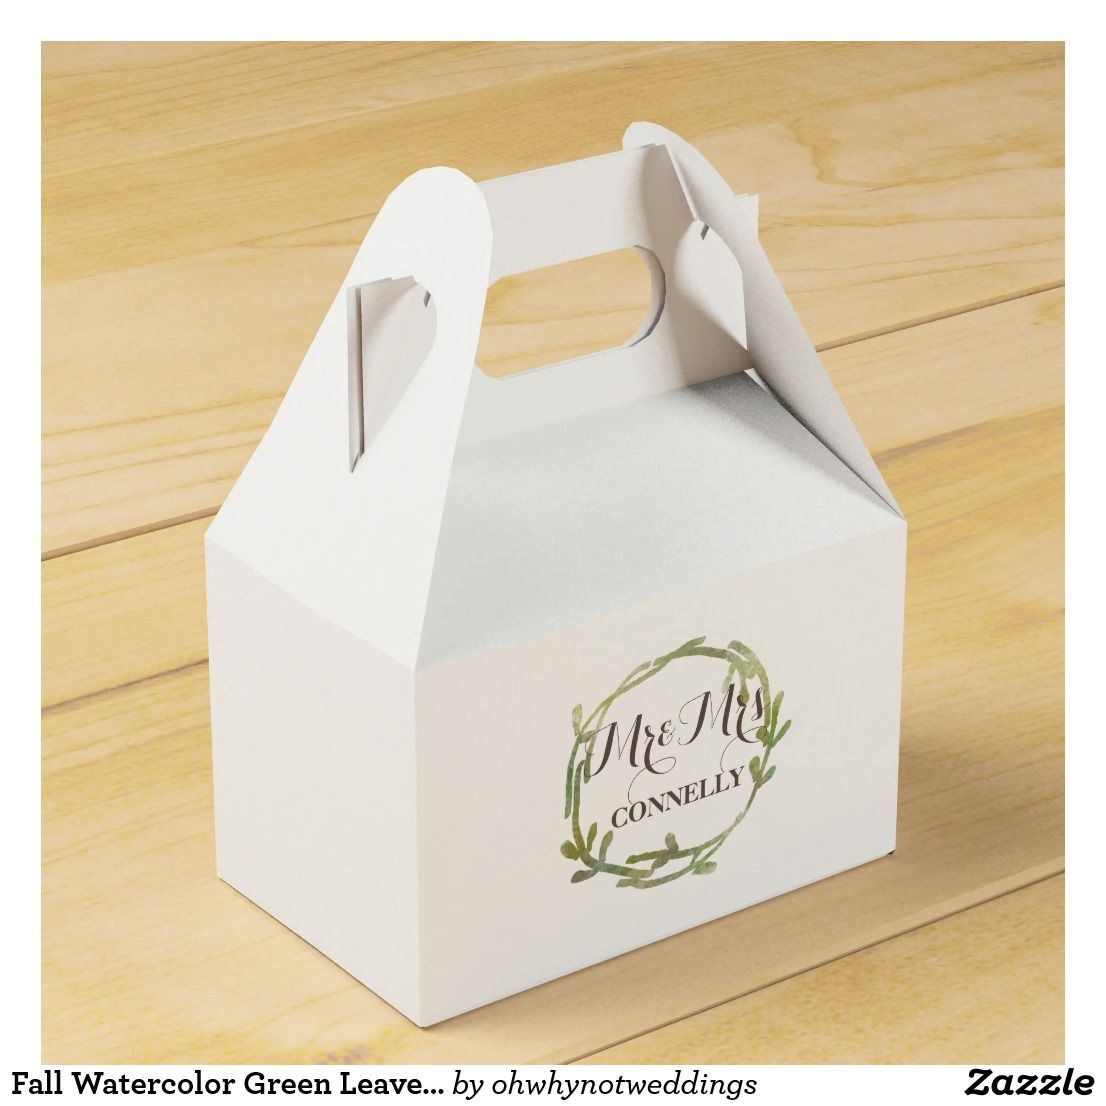 Fall Watercolor Green Leaves Wedding Favor Box | Favors and Weddings